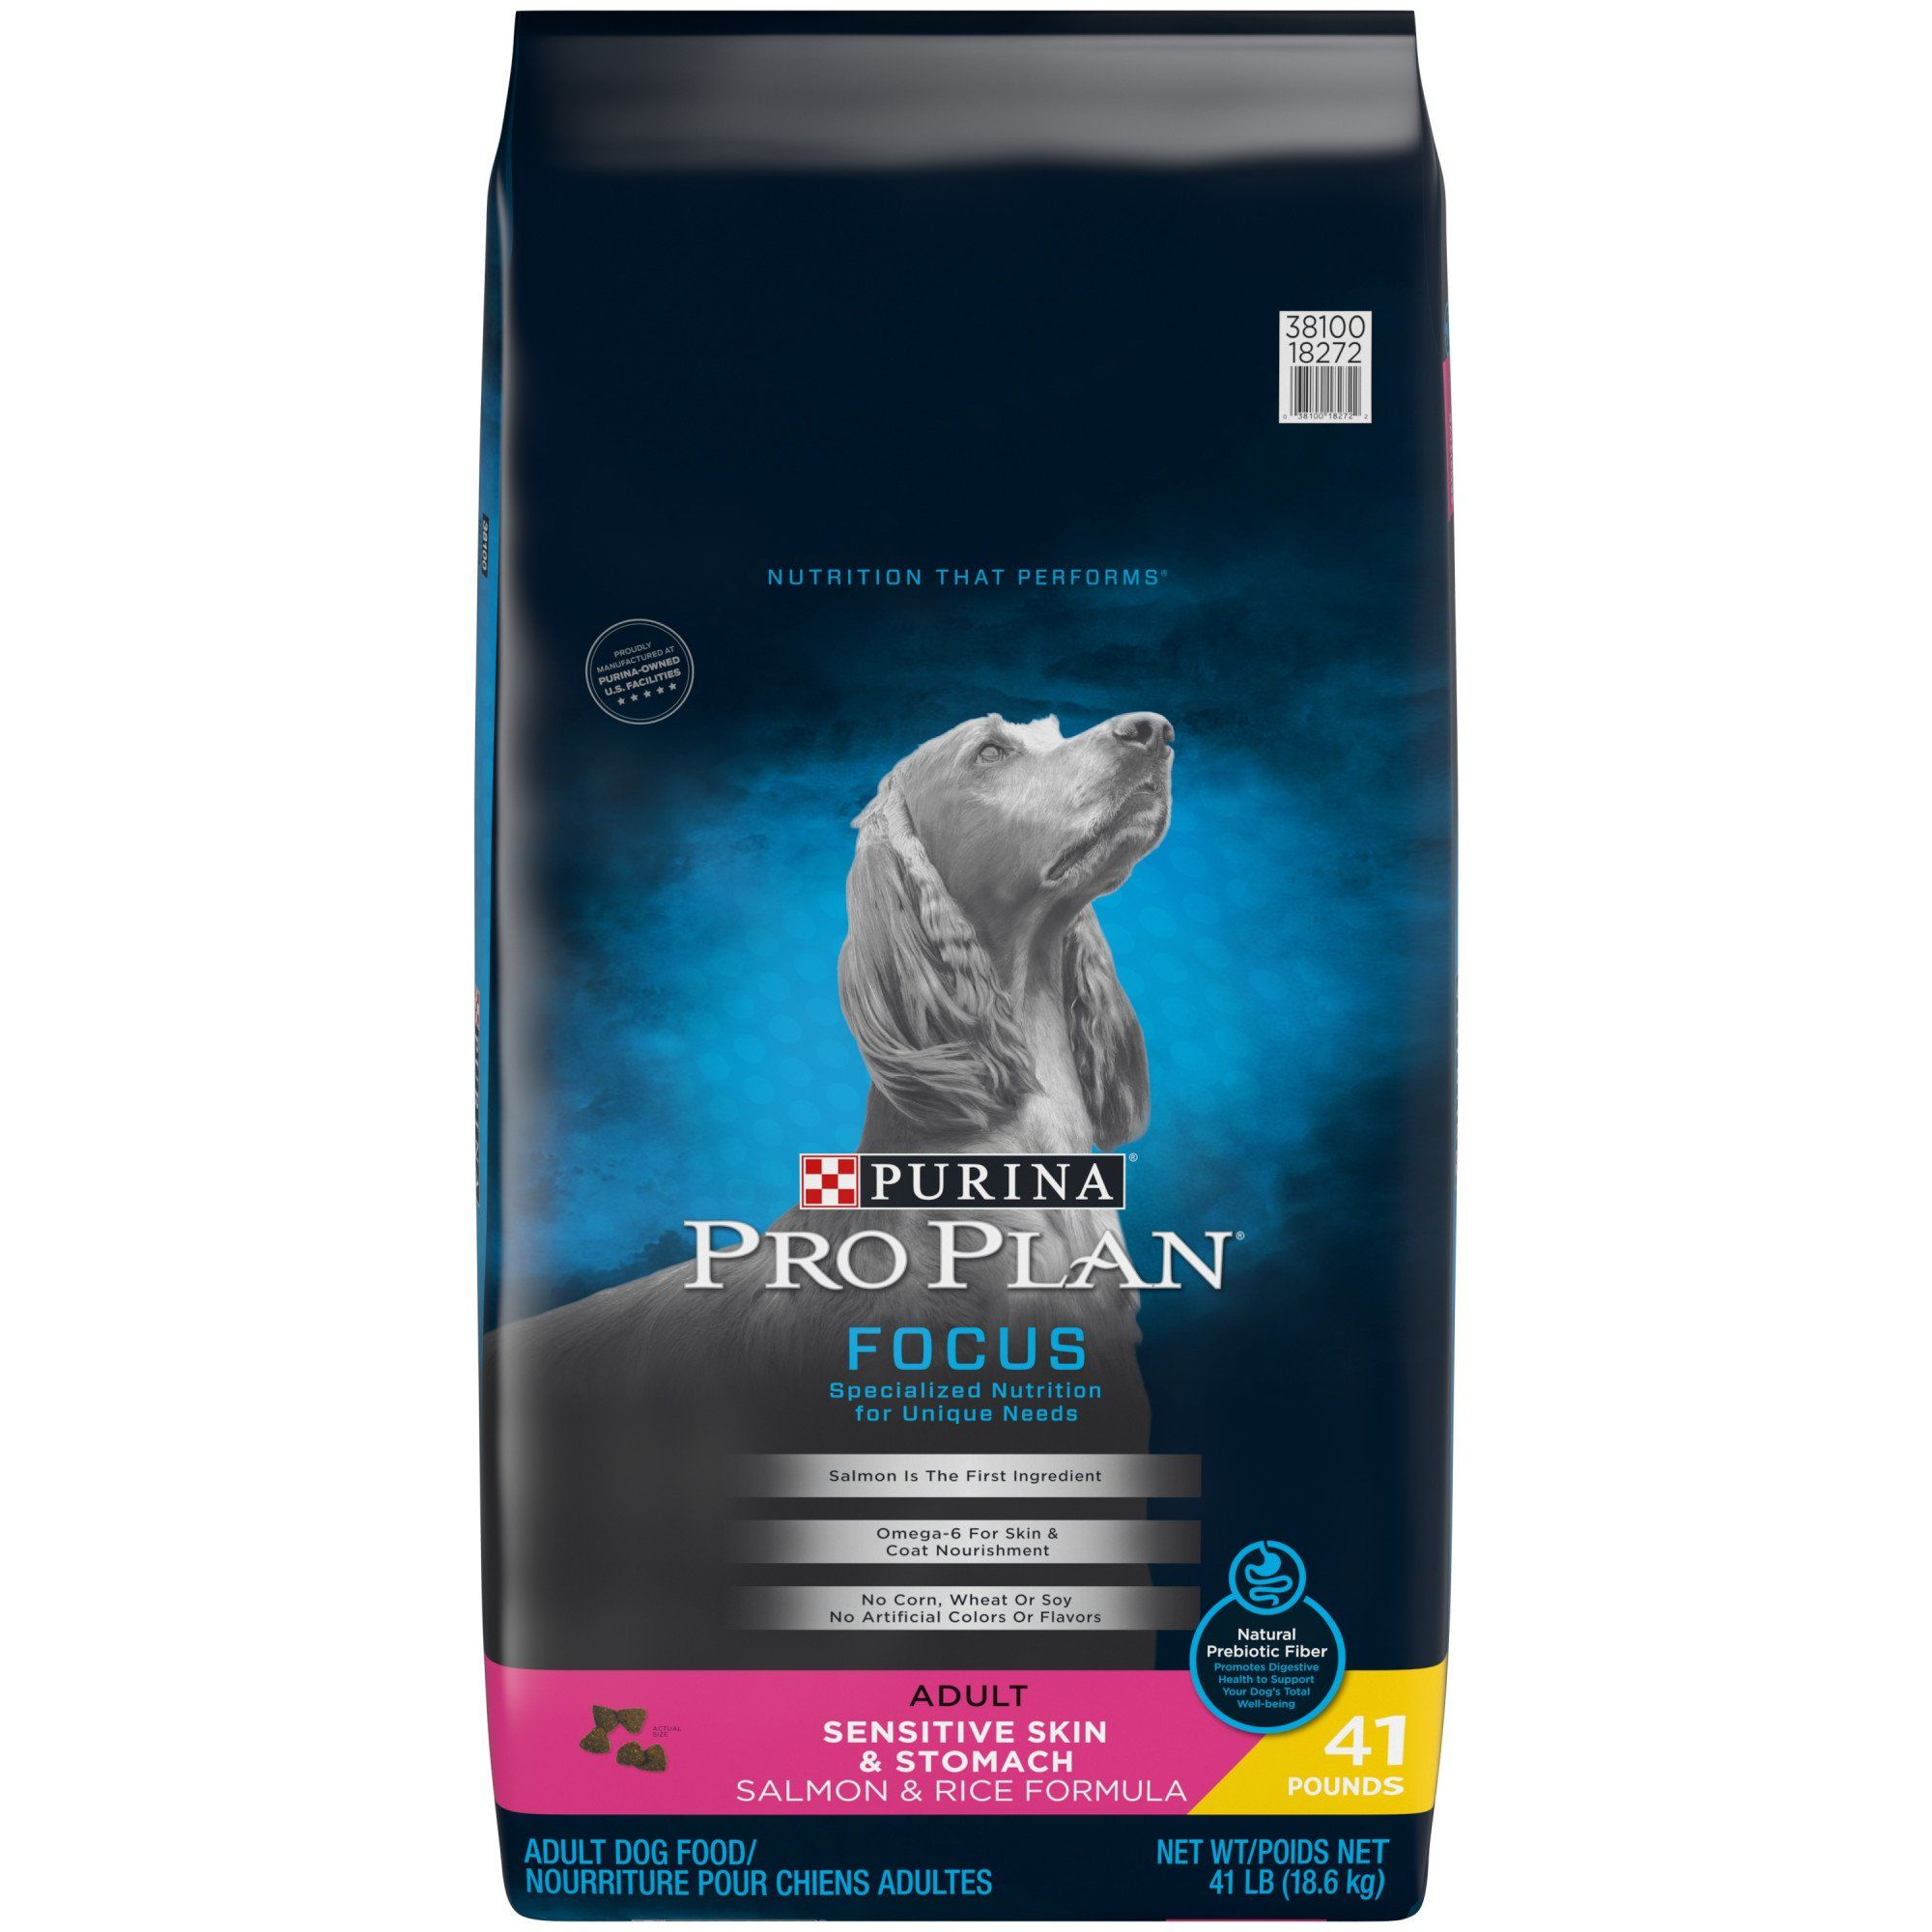 Purina Pro Plan Focus Sensitive Skin Stomach Salmon Rice